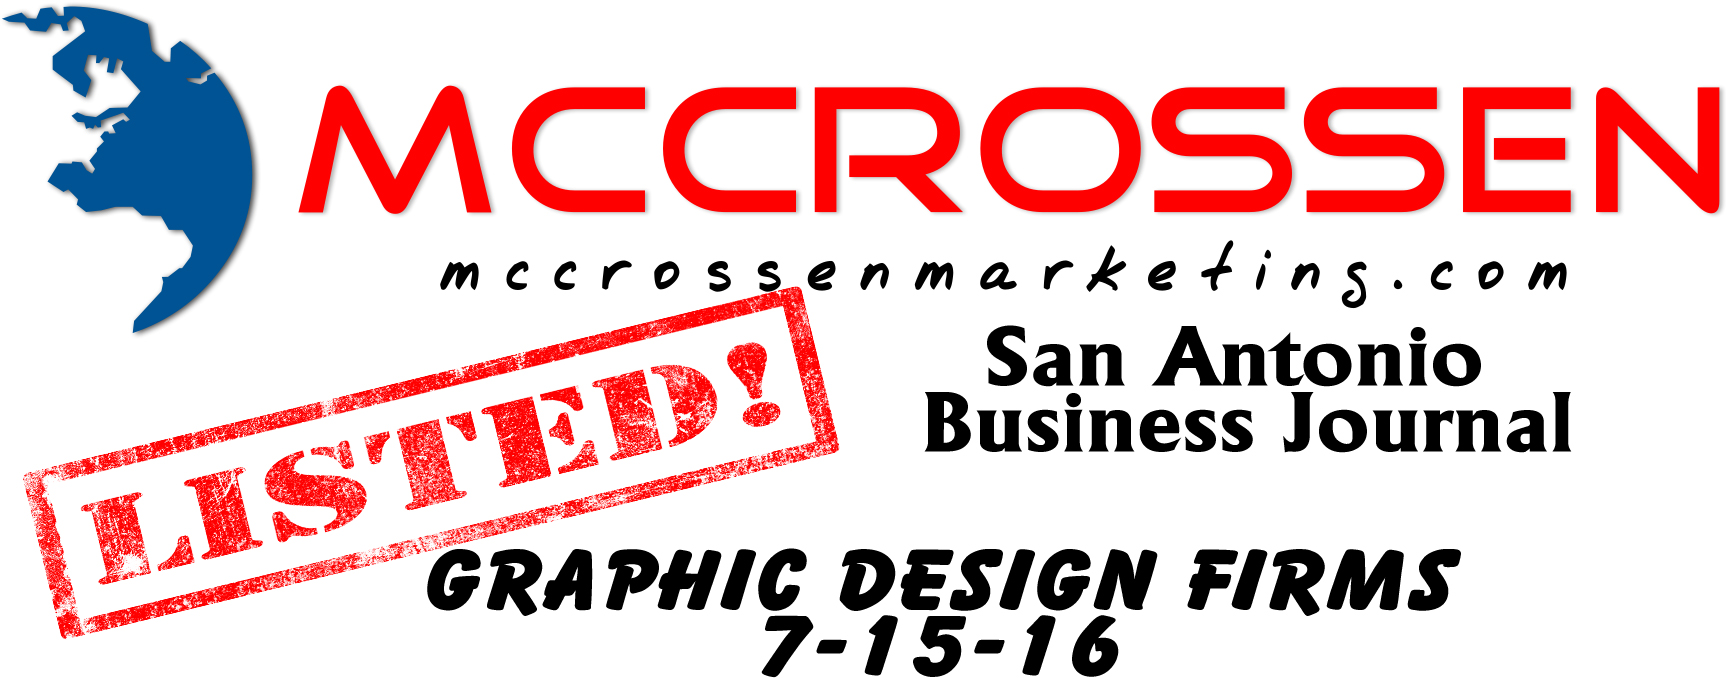 San Antonio Business Journal Graphic Design Firms List July 2016